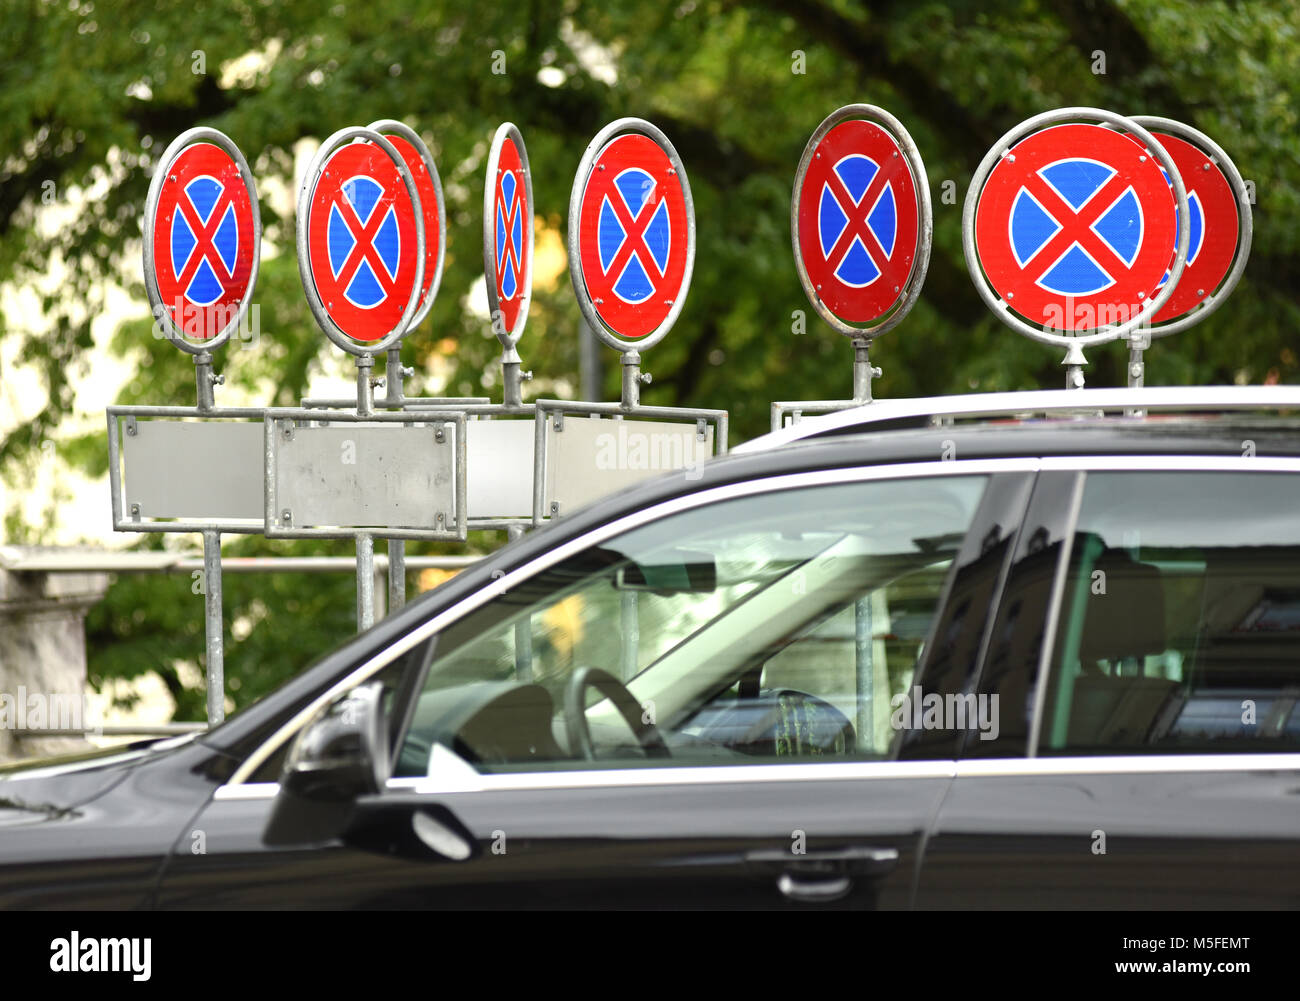 Road signs 'Parking prohibited' and car - Stock Image